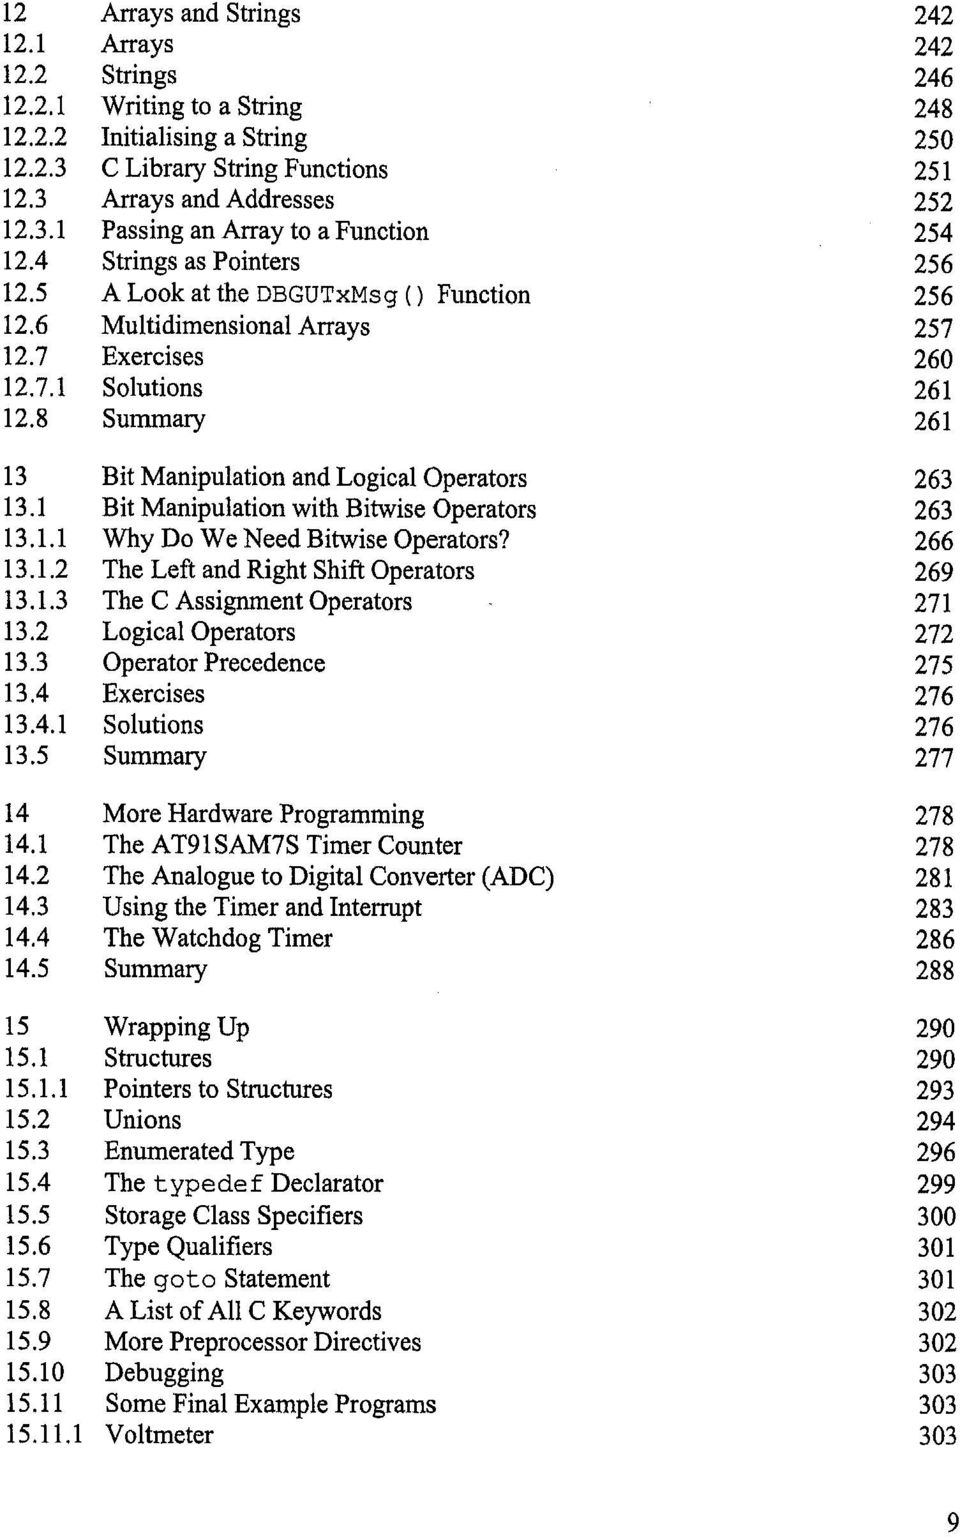 8 Summary 261 13 Bit Manipulation and Logical Operators 263 13.1 Bit Manipulation with Bitwise Operators 263 13.1.1 Why Do We Need Bitwise Operators? 266 13.1.2 The Left and Right Shift Operators 269 13.